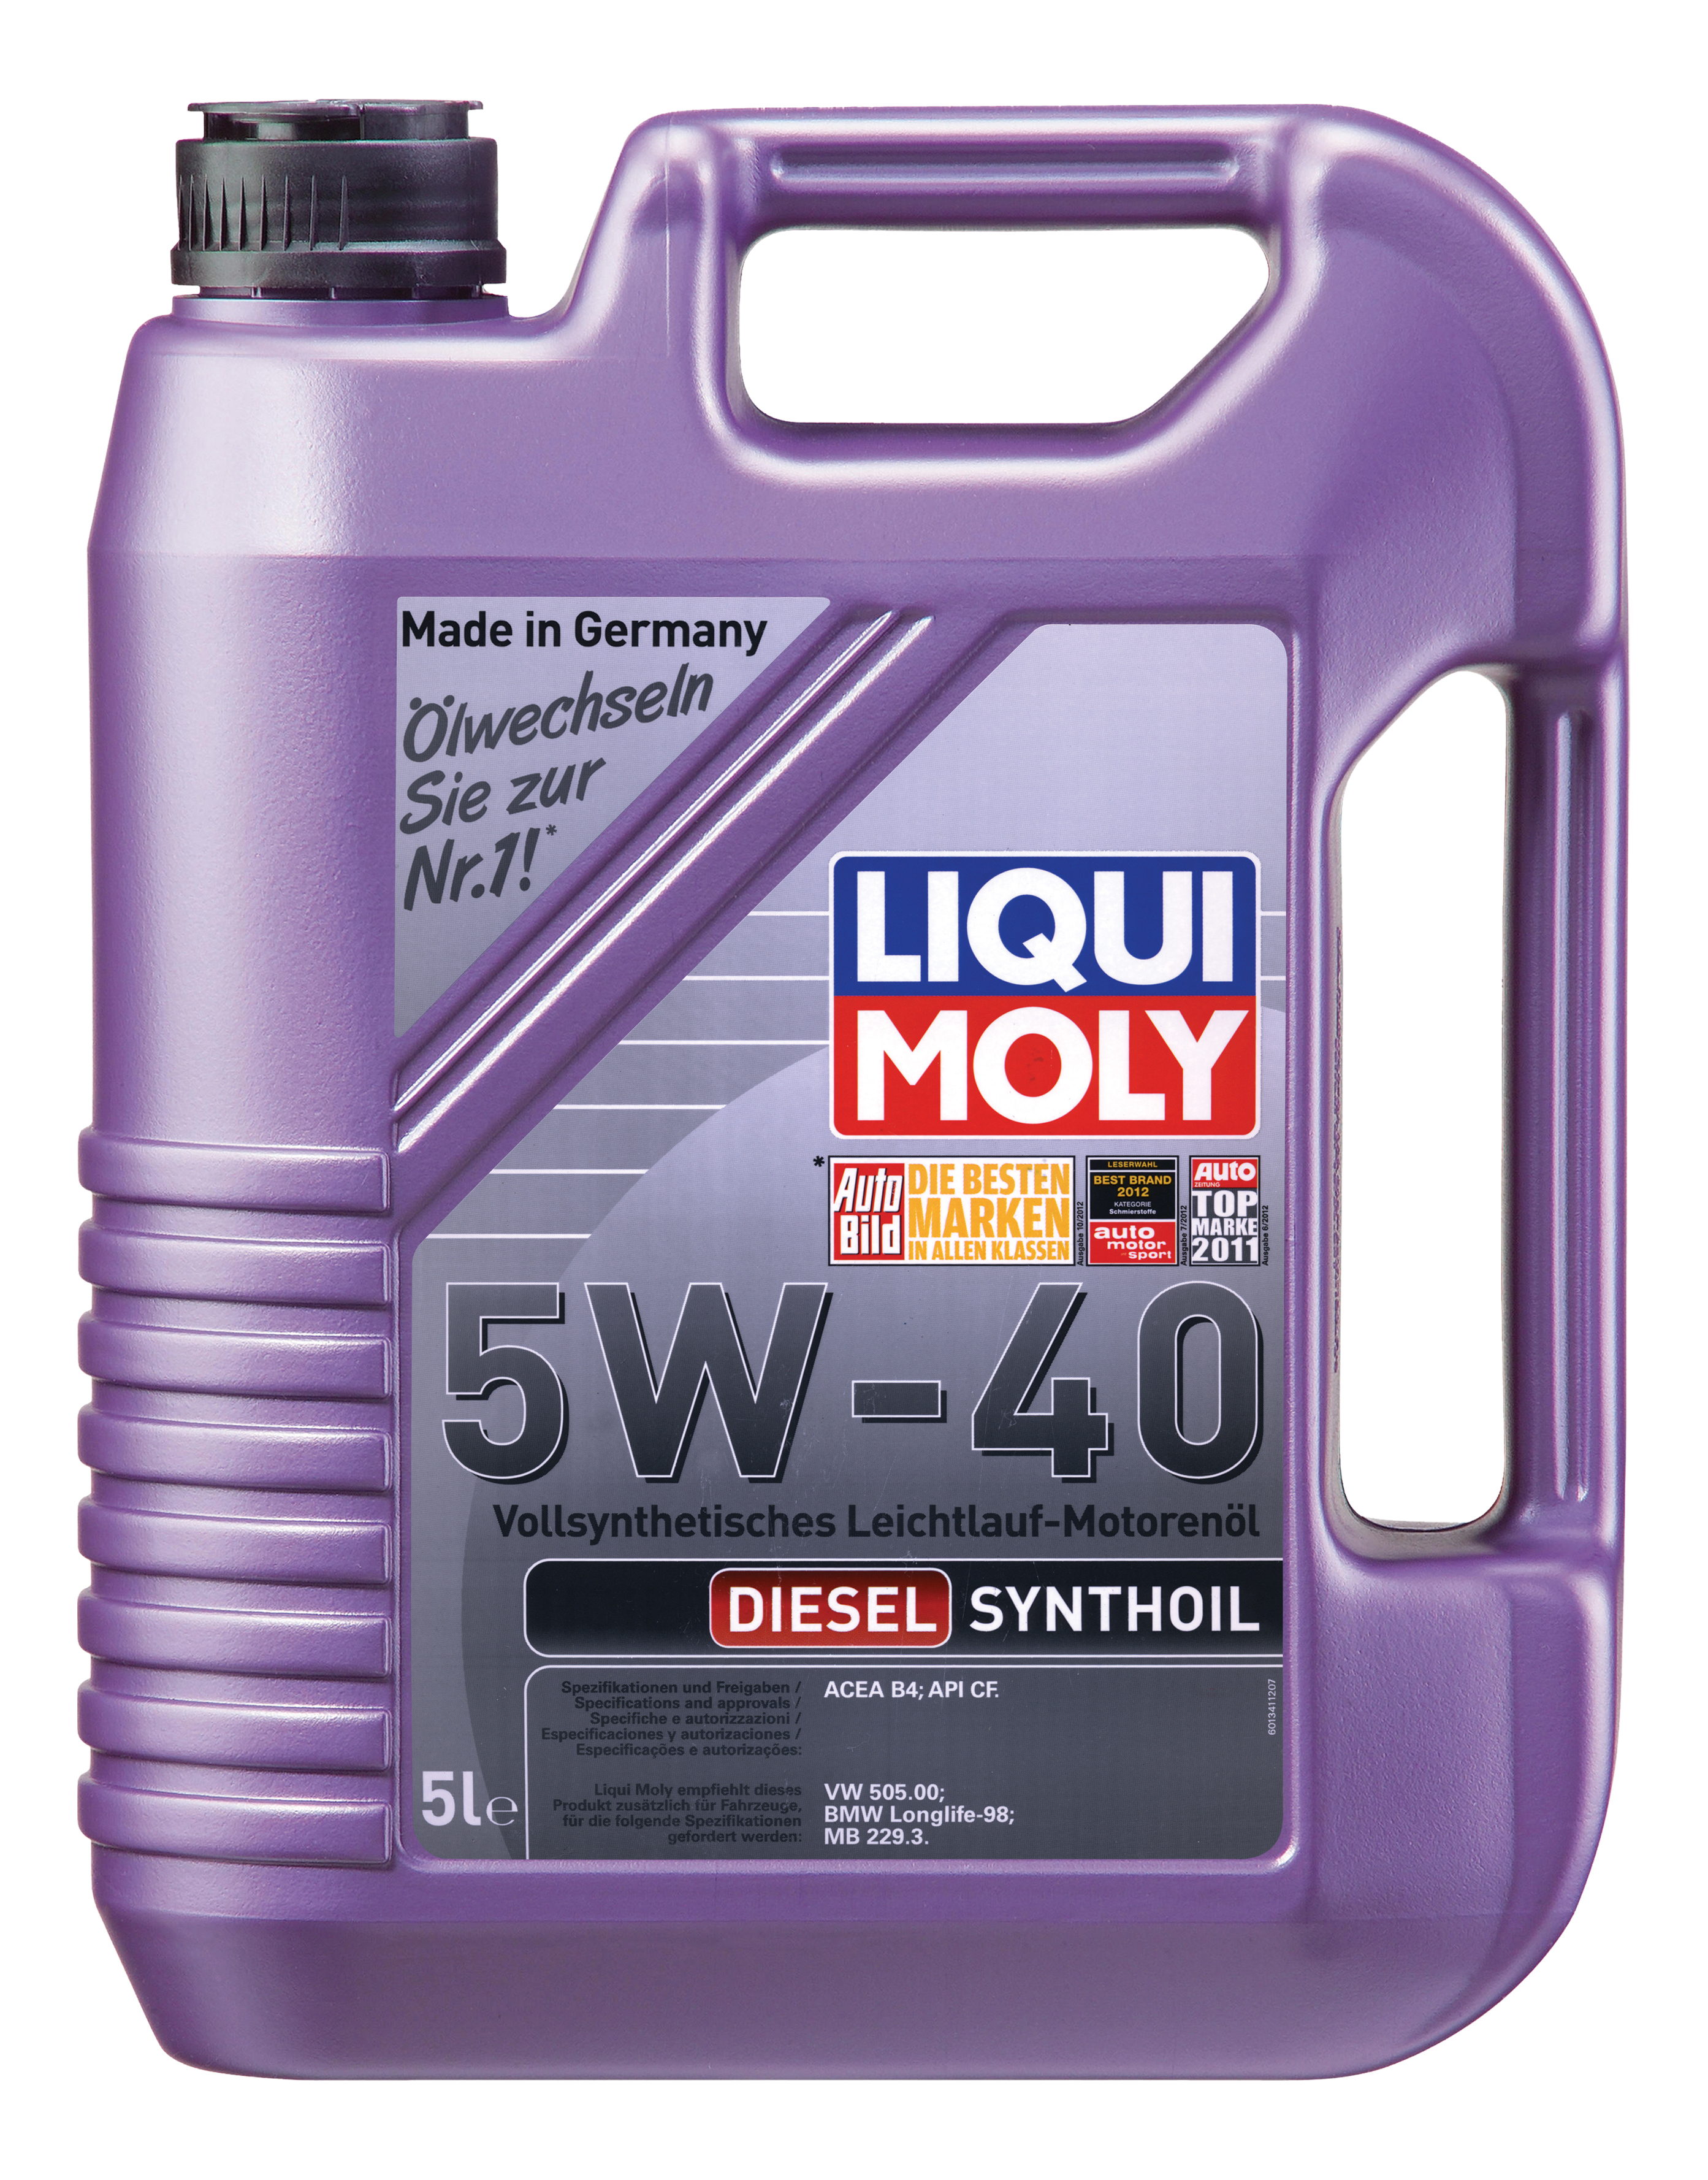 LIQUI MOLY DIESEL SYNTHOIL